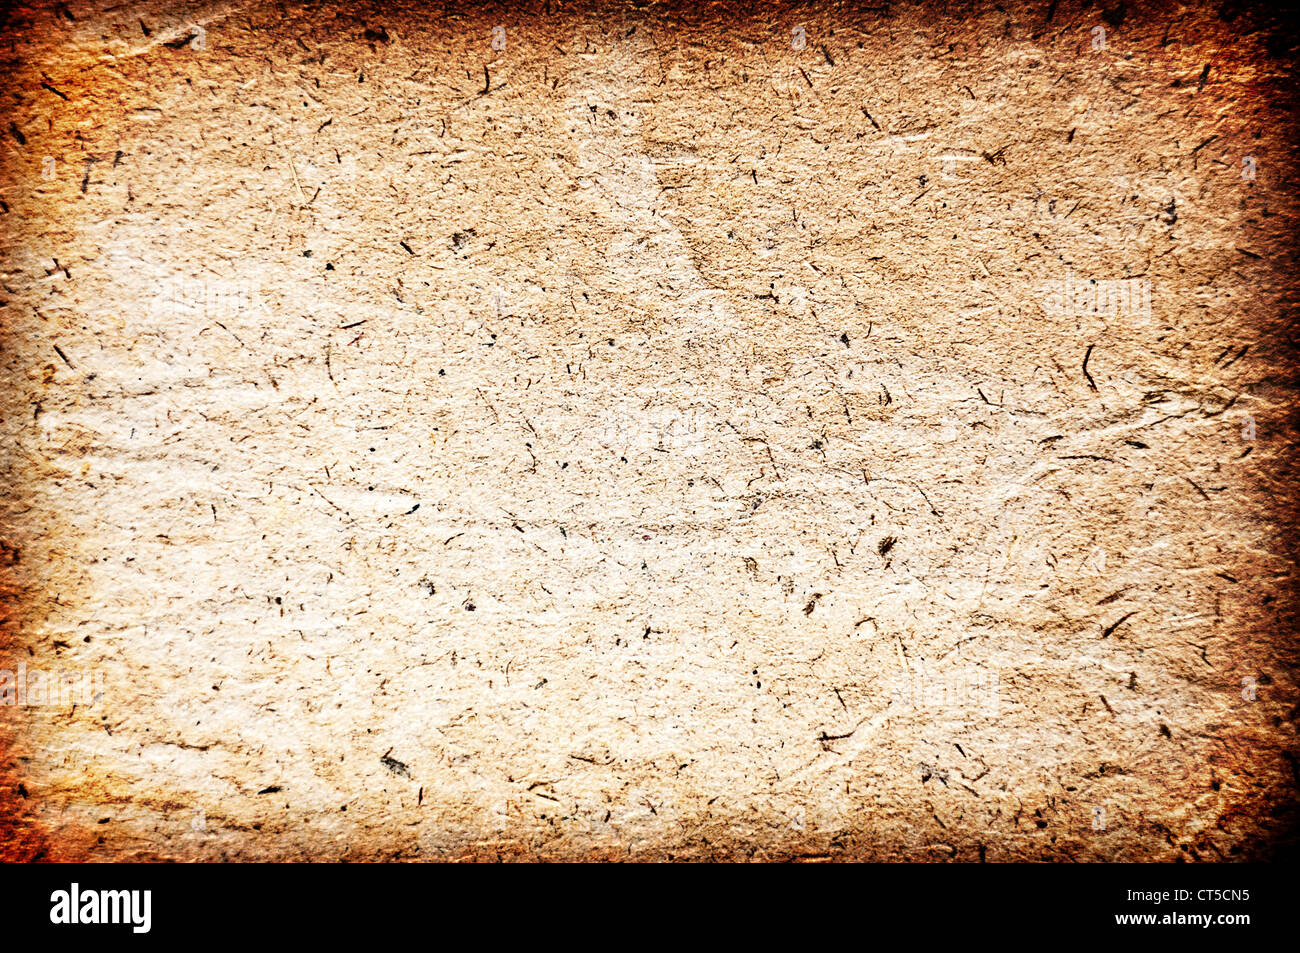 Vintage aged old paper. Original background or texture. - Stock Image